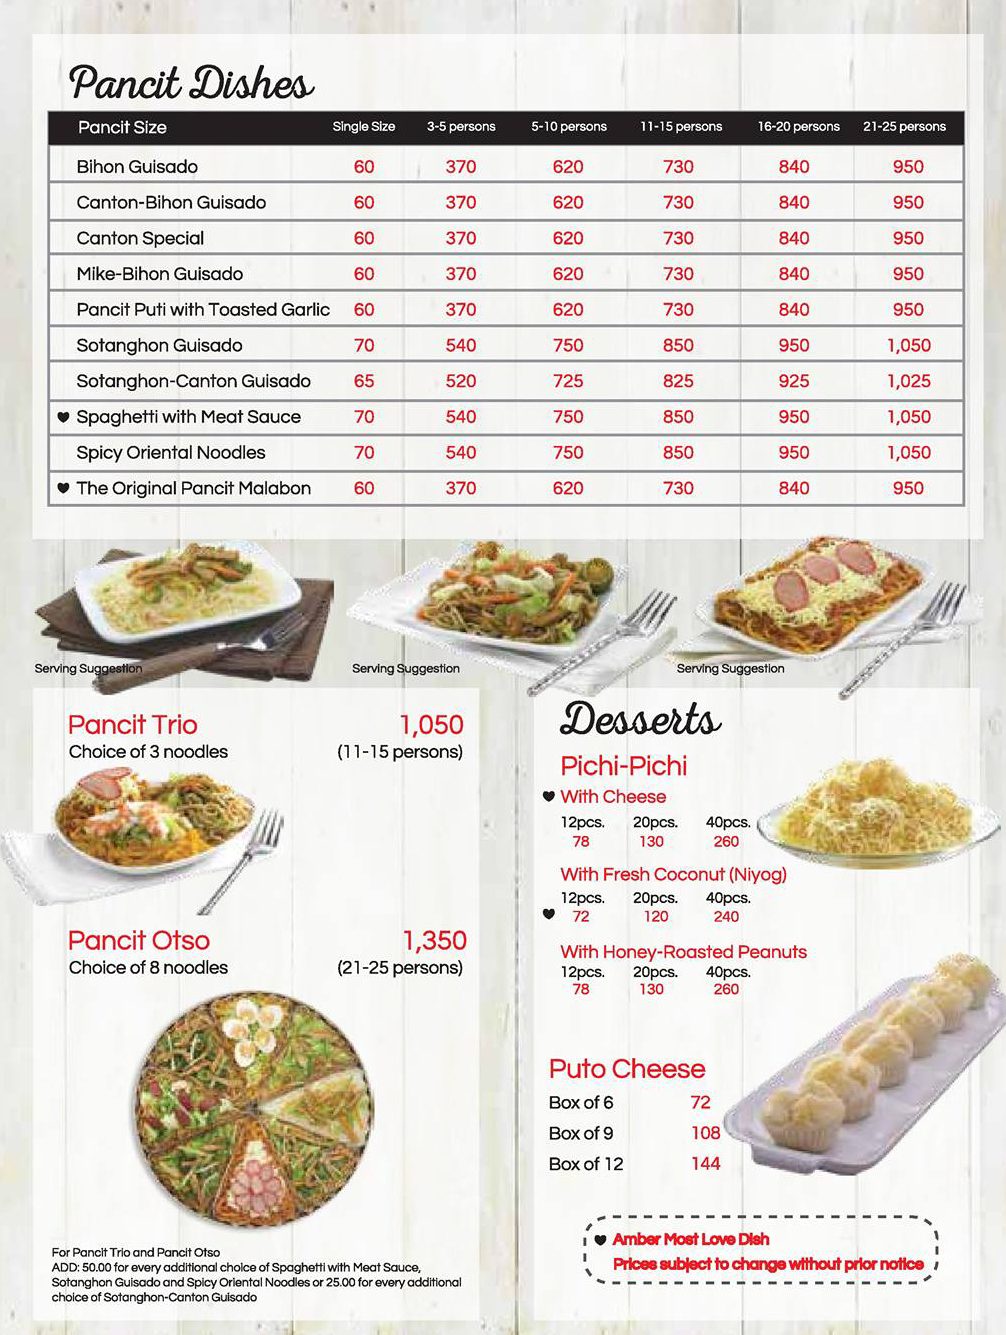 Amber Golden Chain of Restaurants Menu with Prices